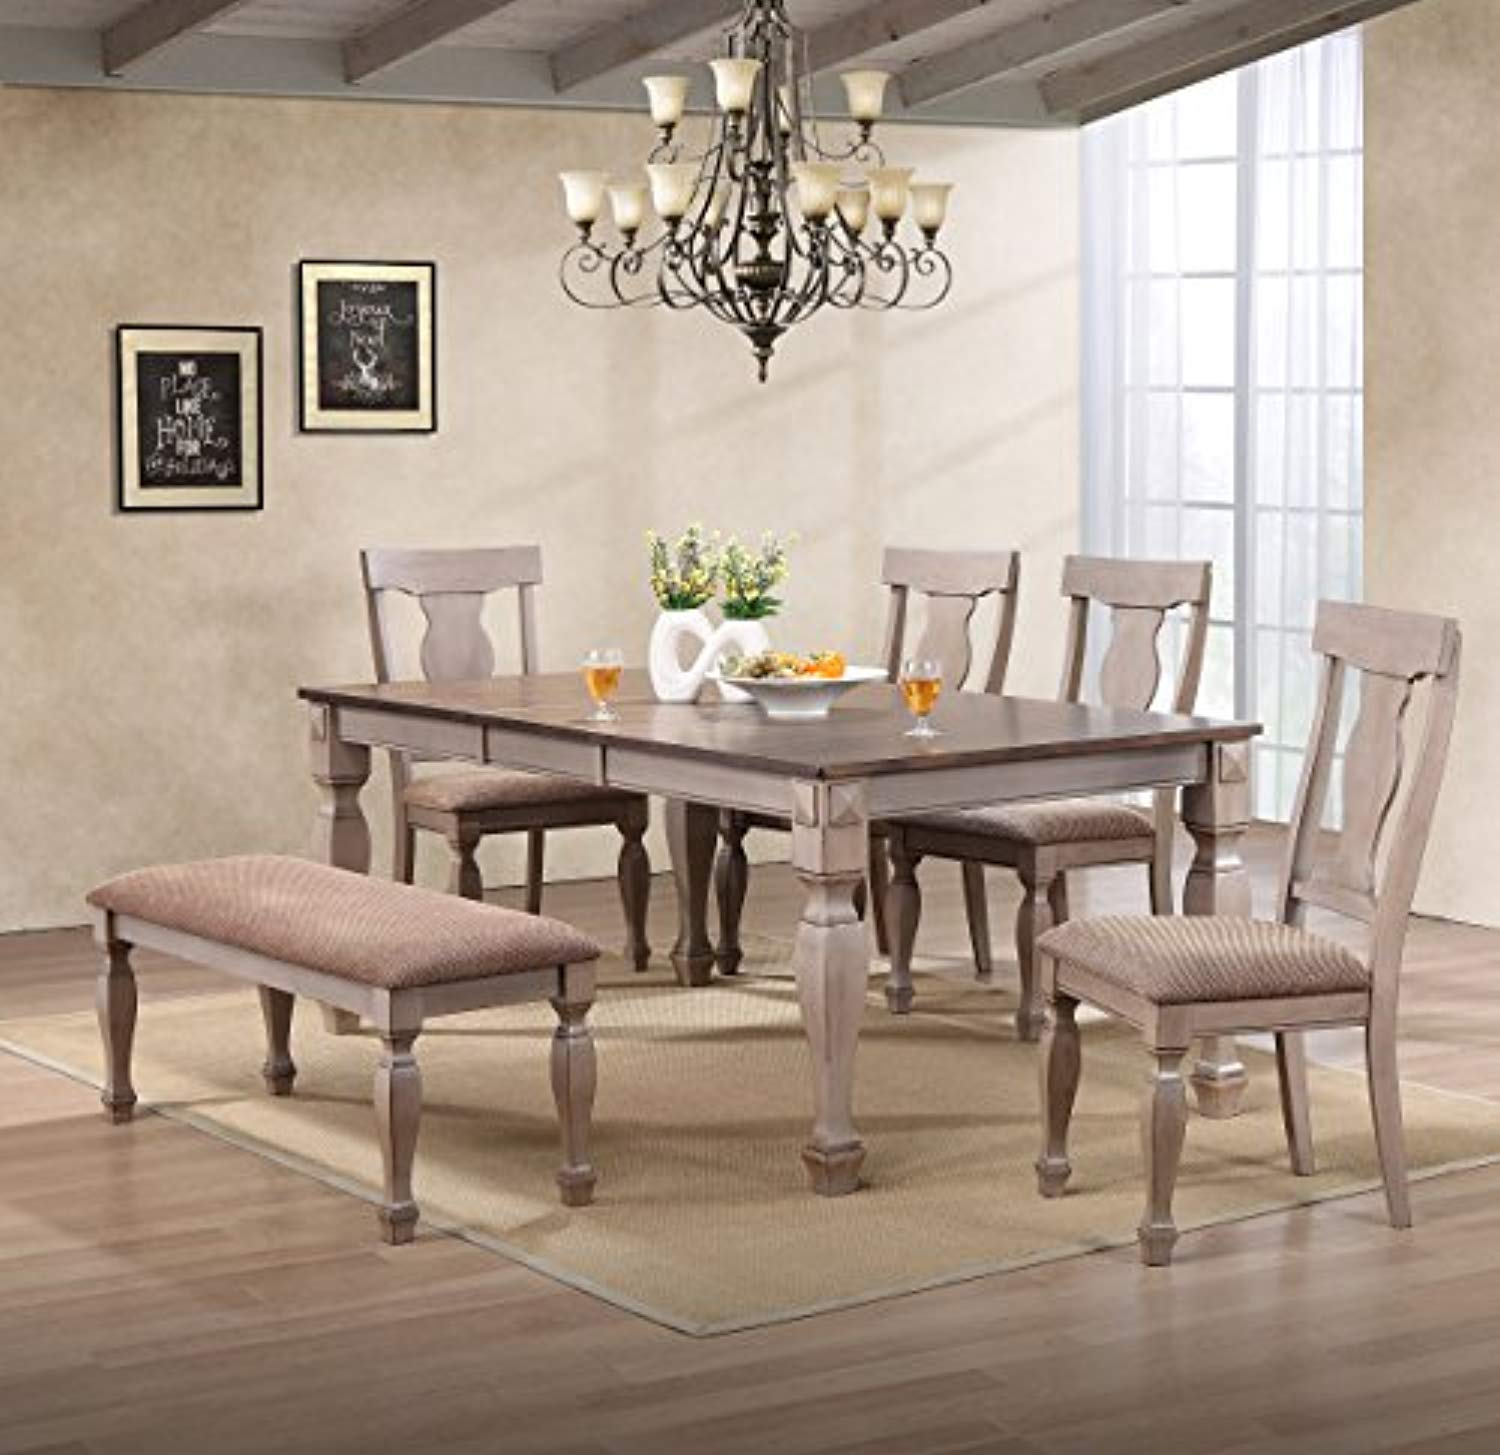 Enjoyable Almon 2 Tone Brown Wood 6 Piece Dining Room Set Table Bench 4 Chairs Interior Design Ideas Oxytryabchikinfo